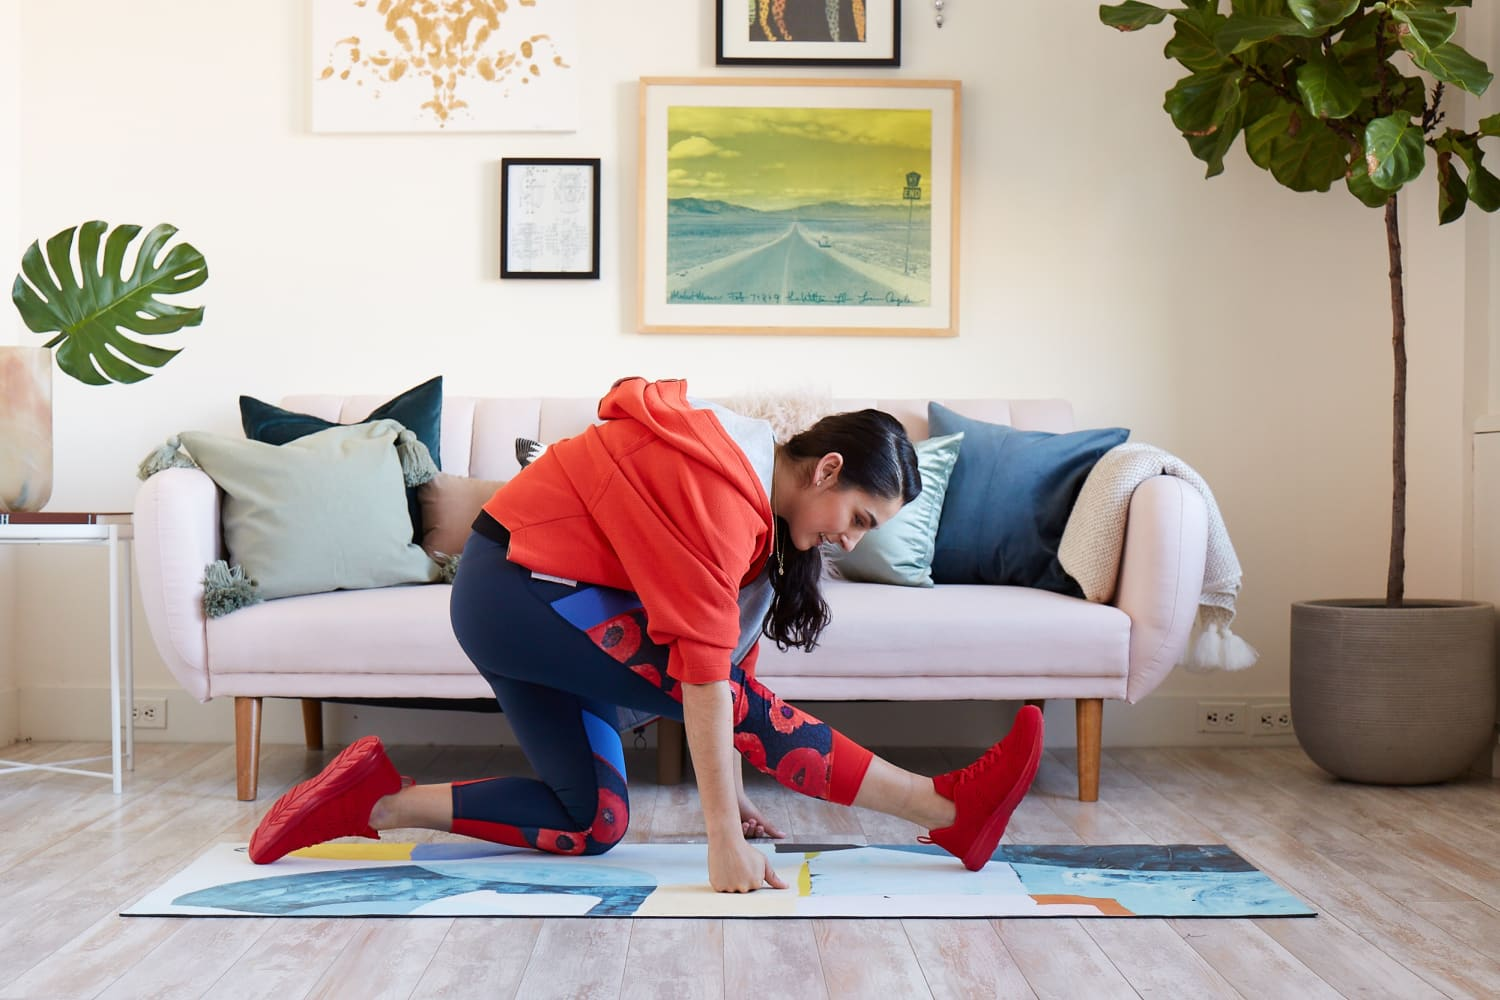 7 Simple Living Room Stretches You Should Do If You Sit at a Desk All Day